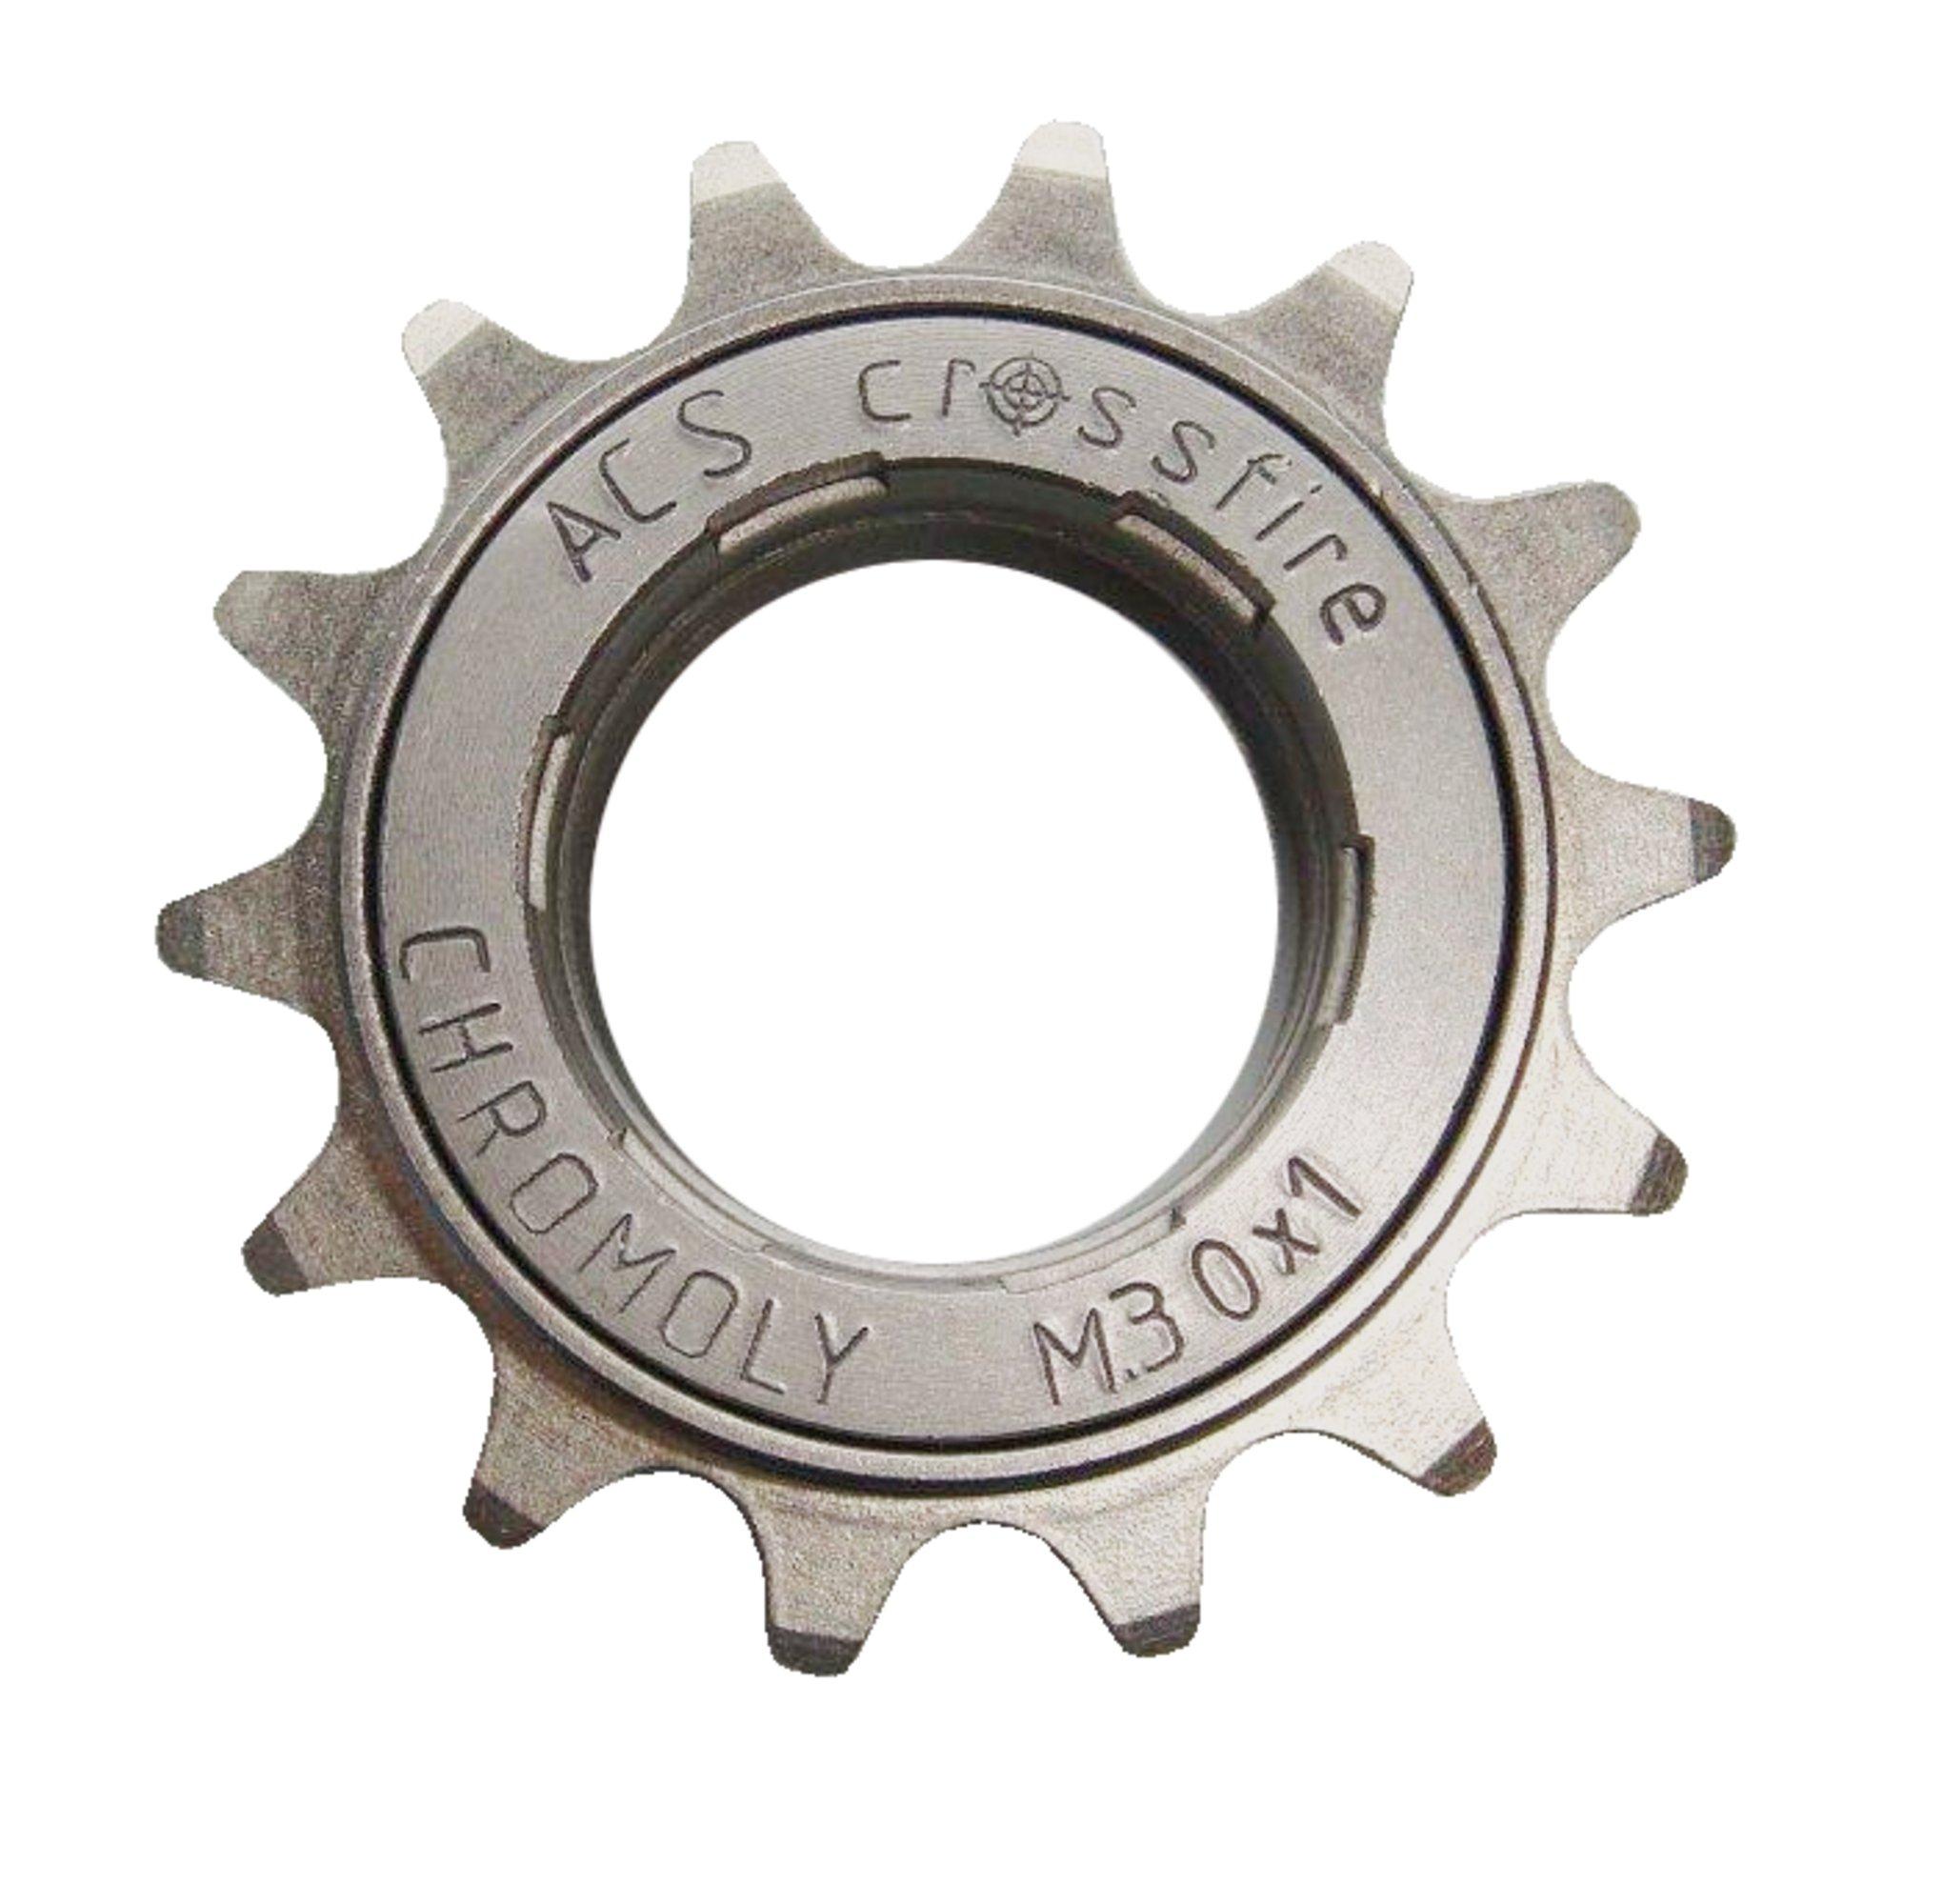 ACS Crossfire BMX Freewheel Tool